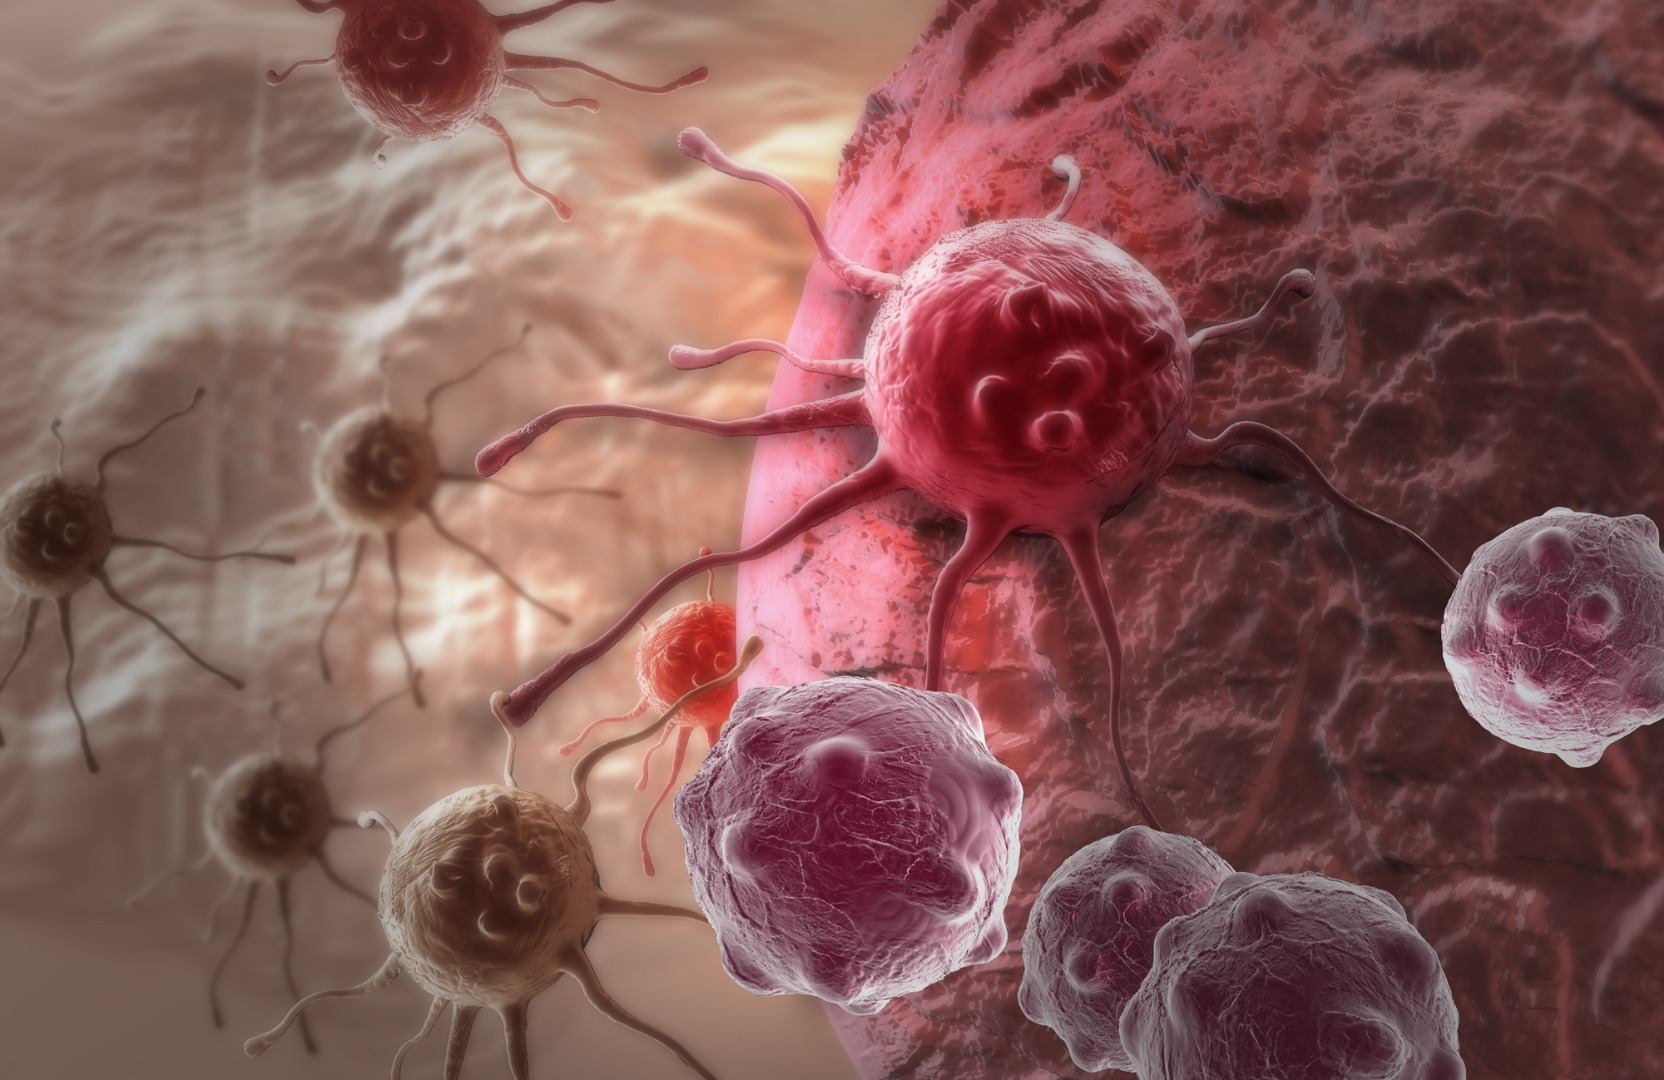 Discovery of new autoimmune disease triggered by testicular cancer